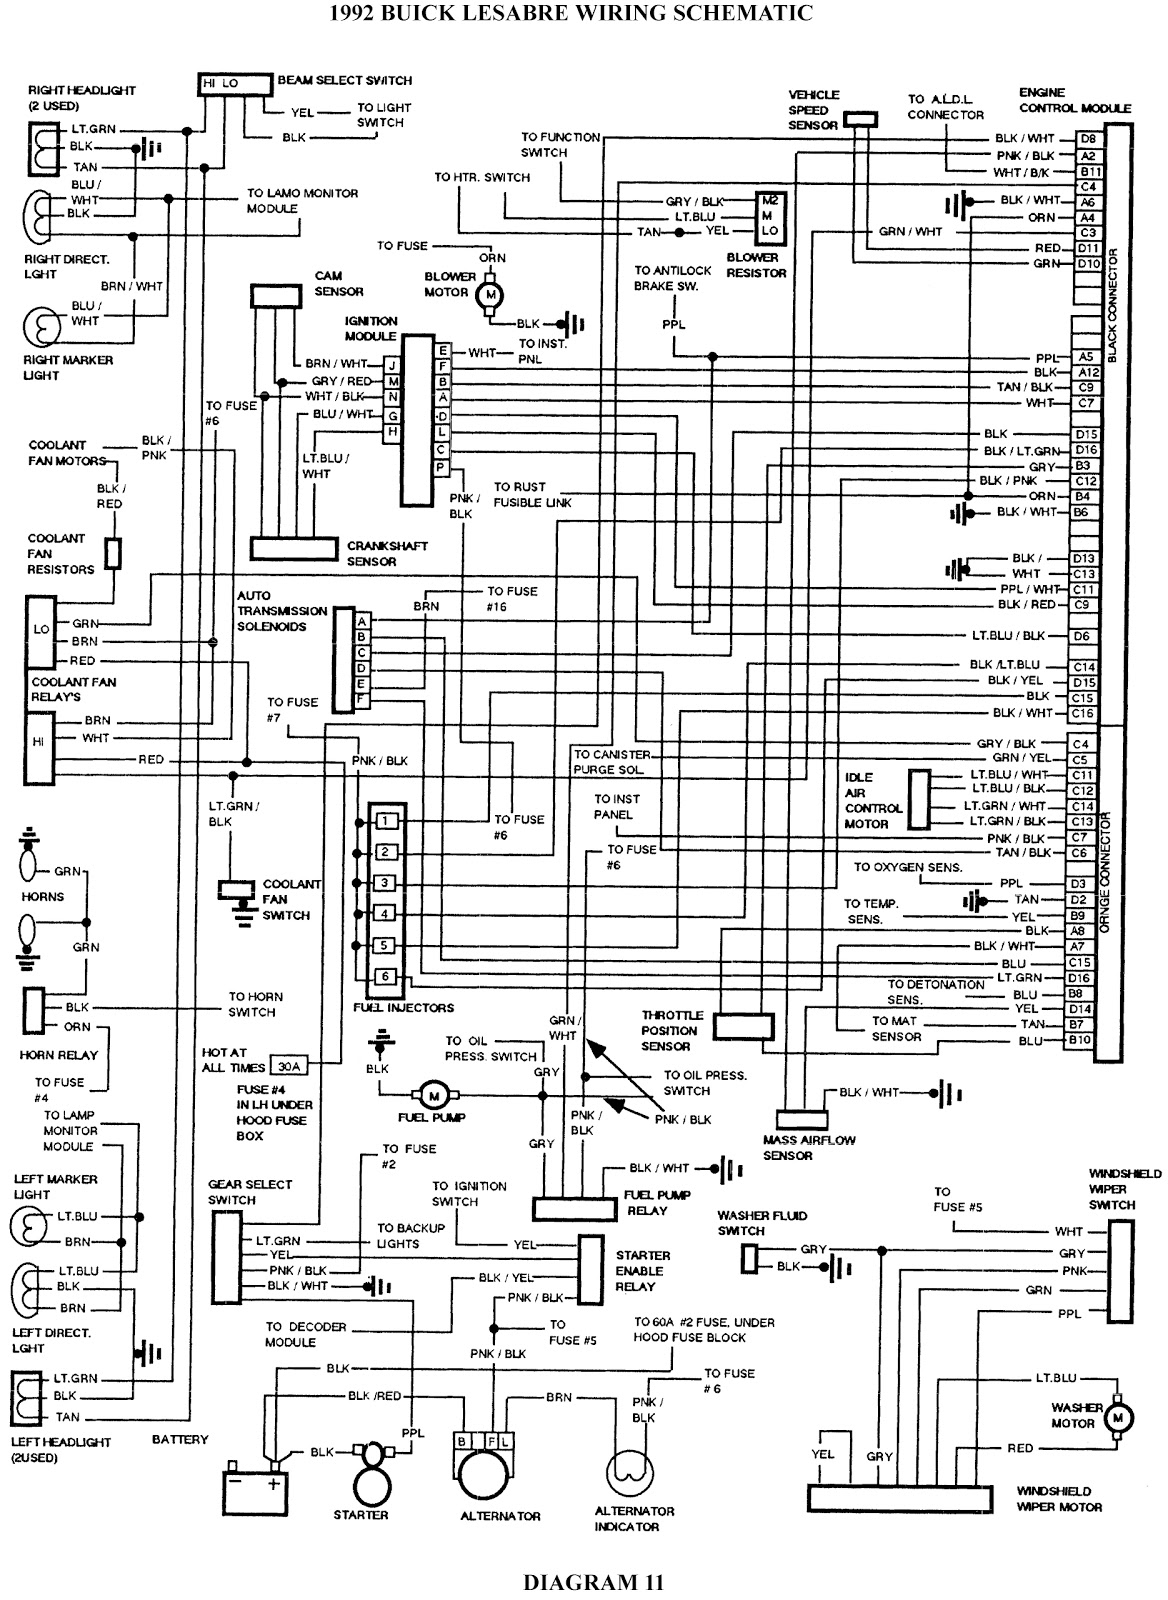 1993 f150 radio wiring diagram